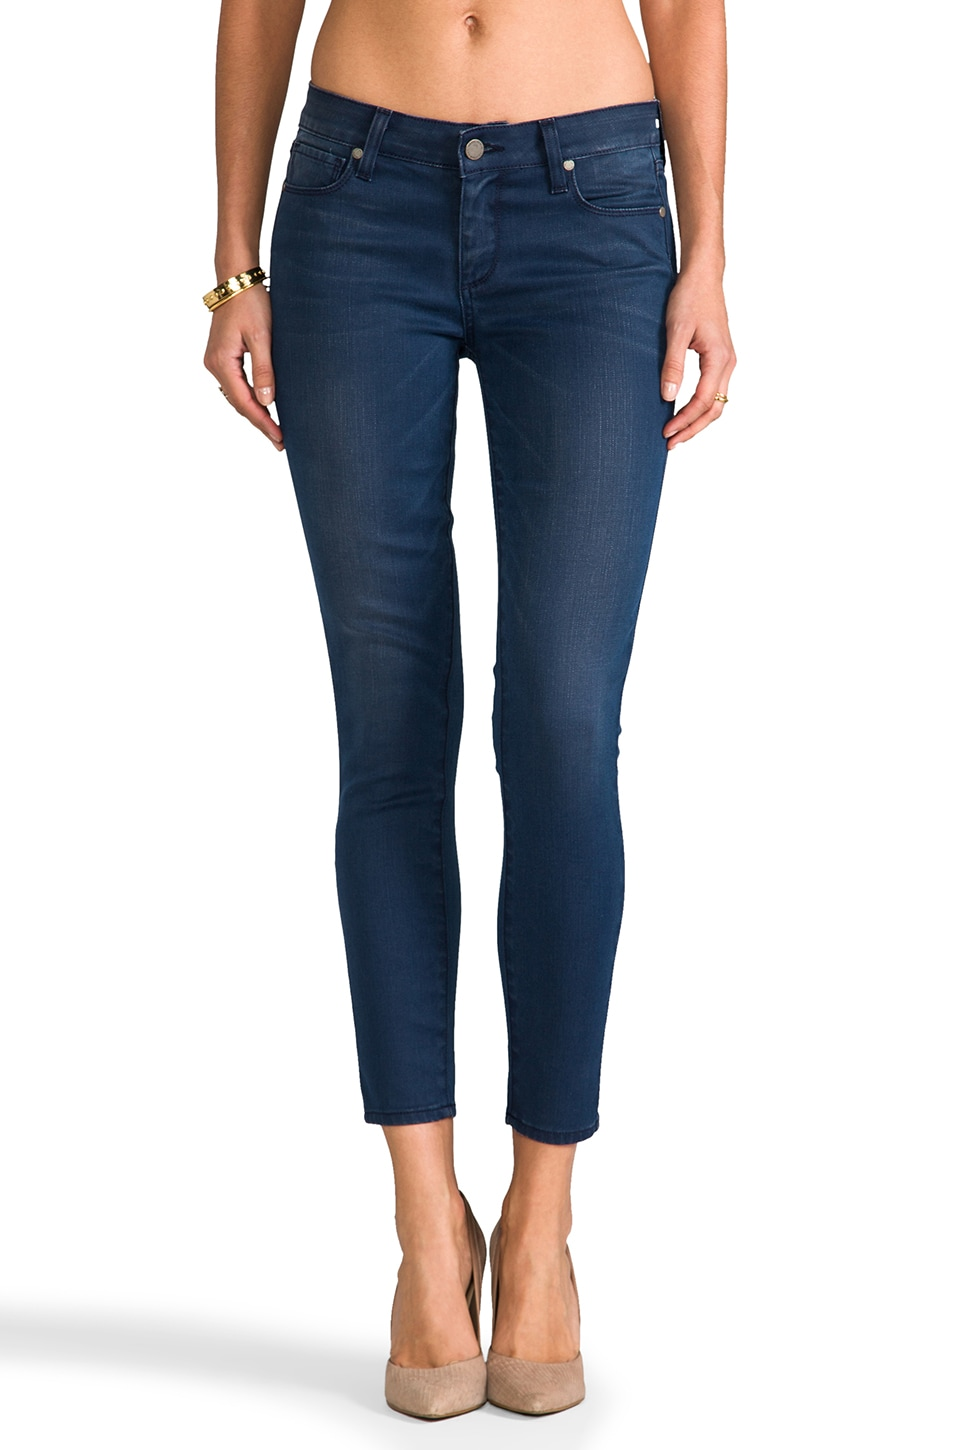 PAIGE Denim Verdugo Ankle in Enlighten